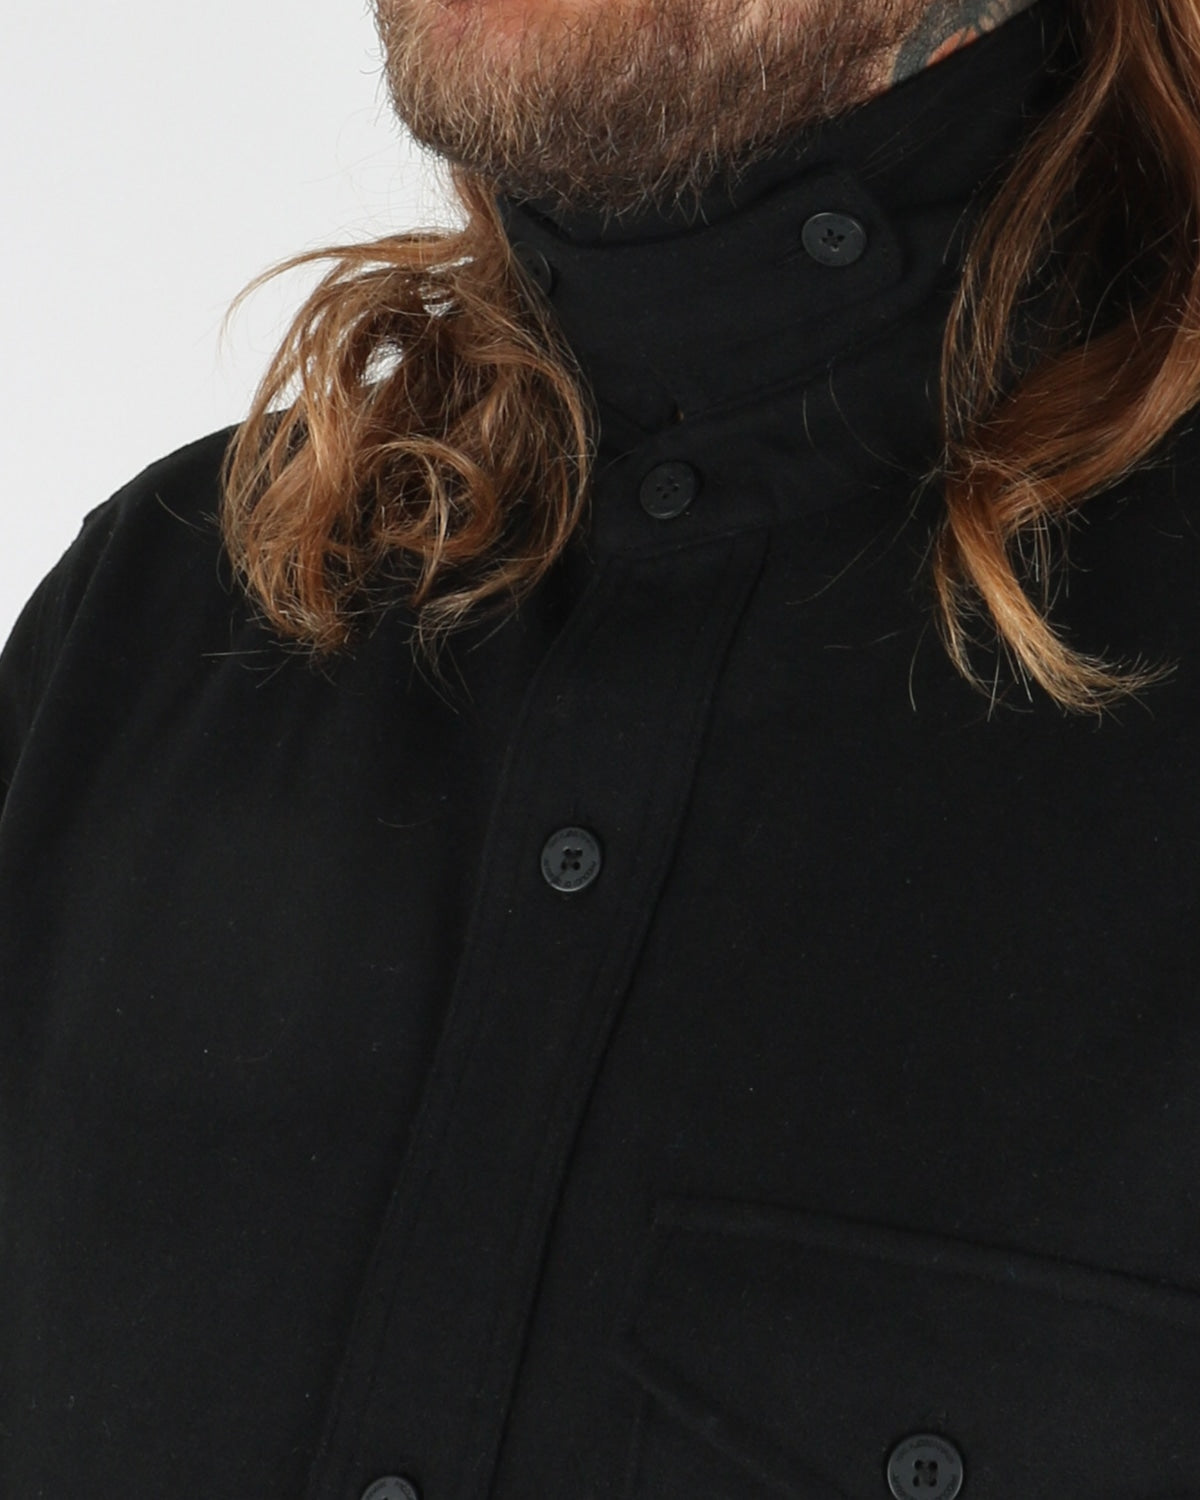 han kjobenhavn_army shirt_black wool_view_4_4